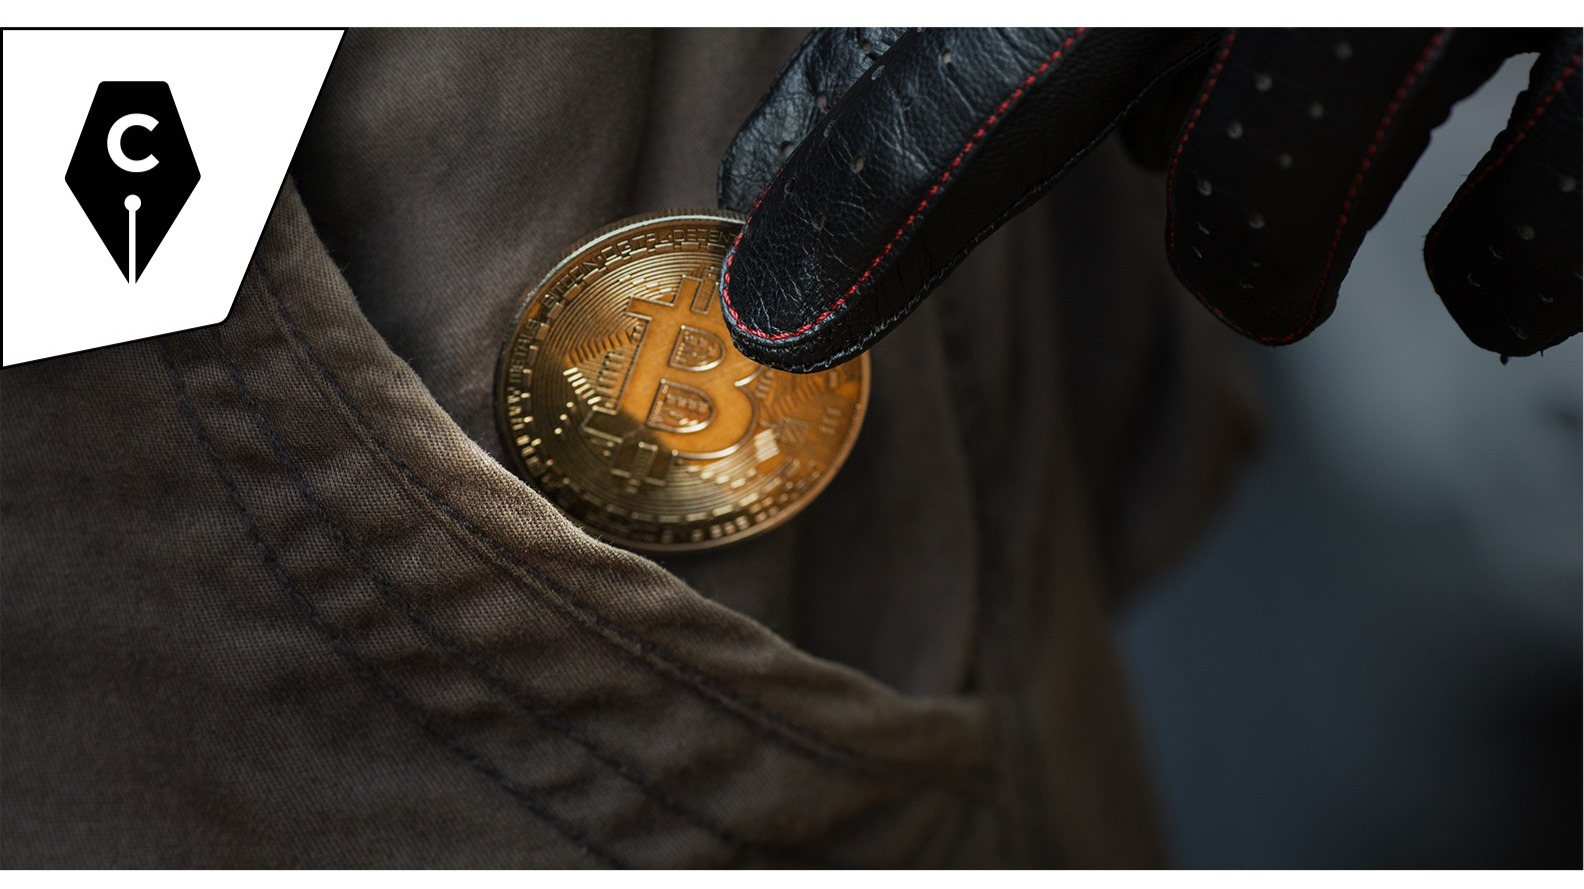 Cryptowriter Branded Adobe Stock Image of a Bitcoin Thief.  All images in this article are licensed via Adobe Stock.